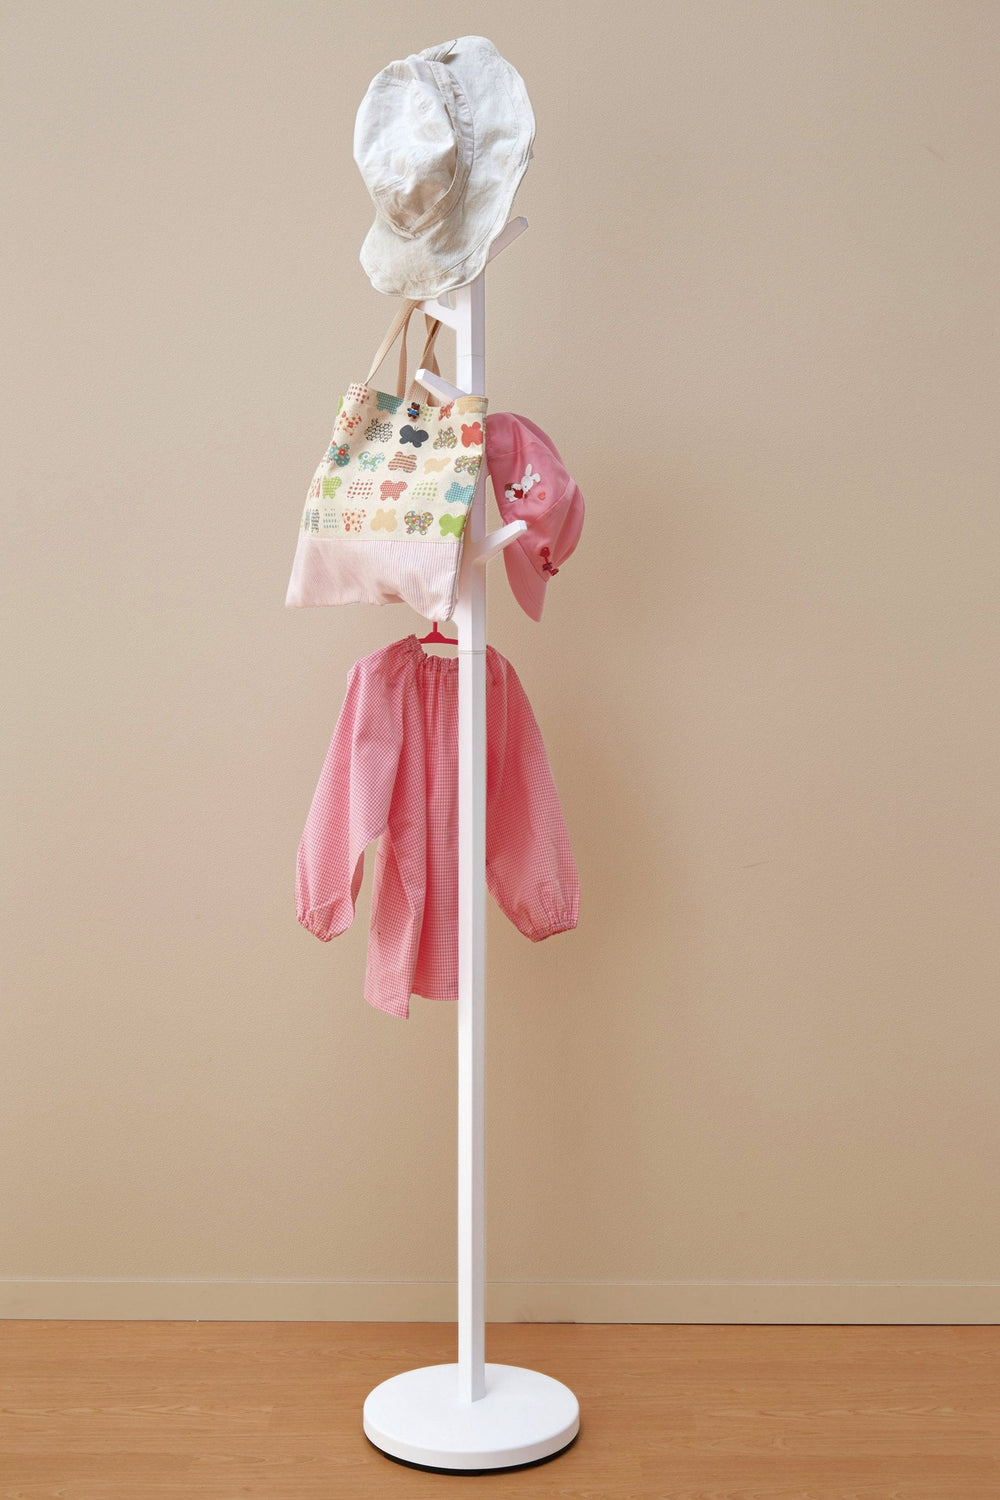 White coat rack in the shape of a tree hung with children's clothes and hats.